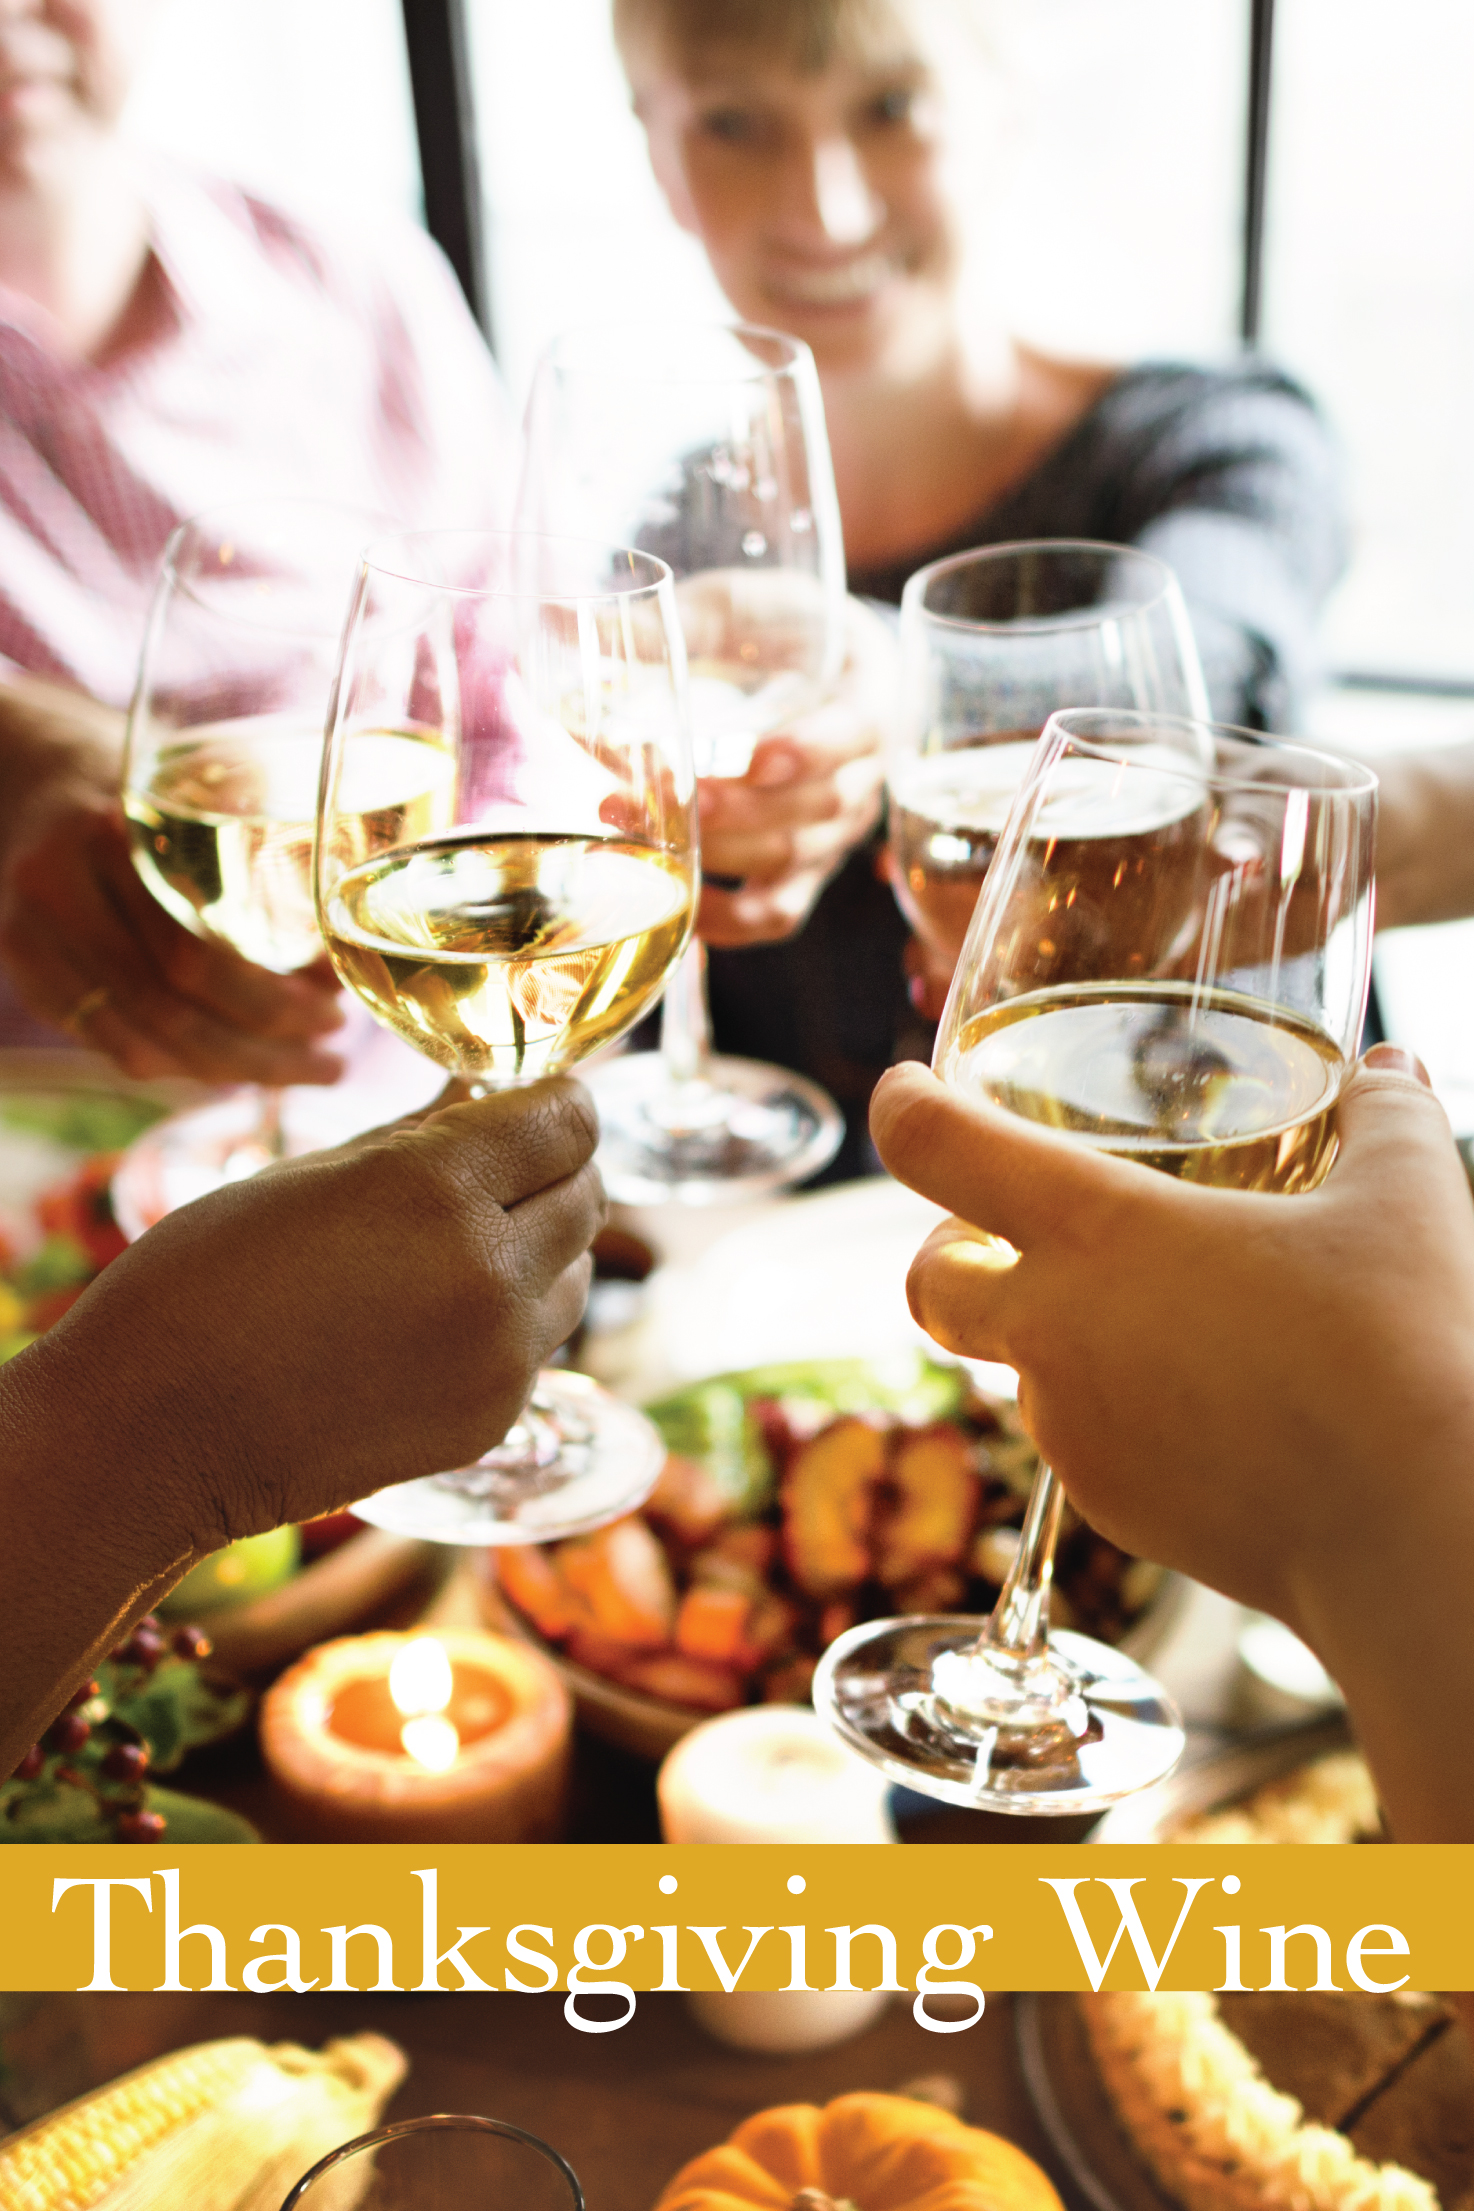 Thanksgiving Wine Tips & Unexpected Pairings